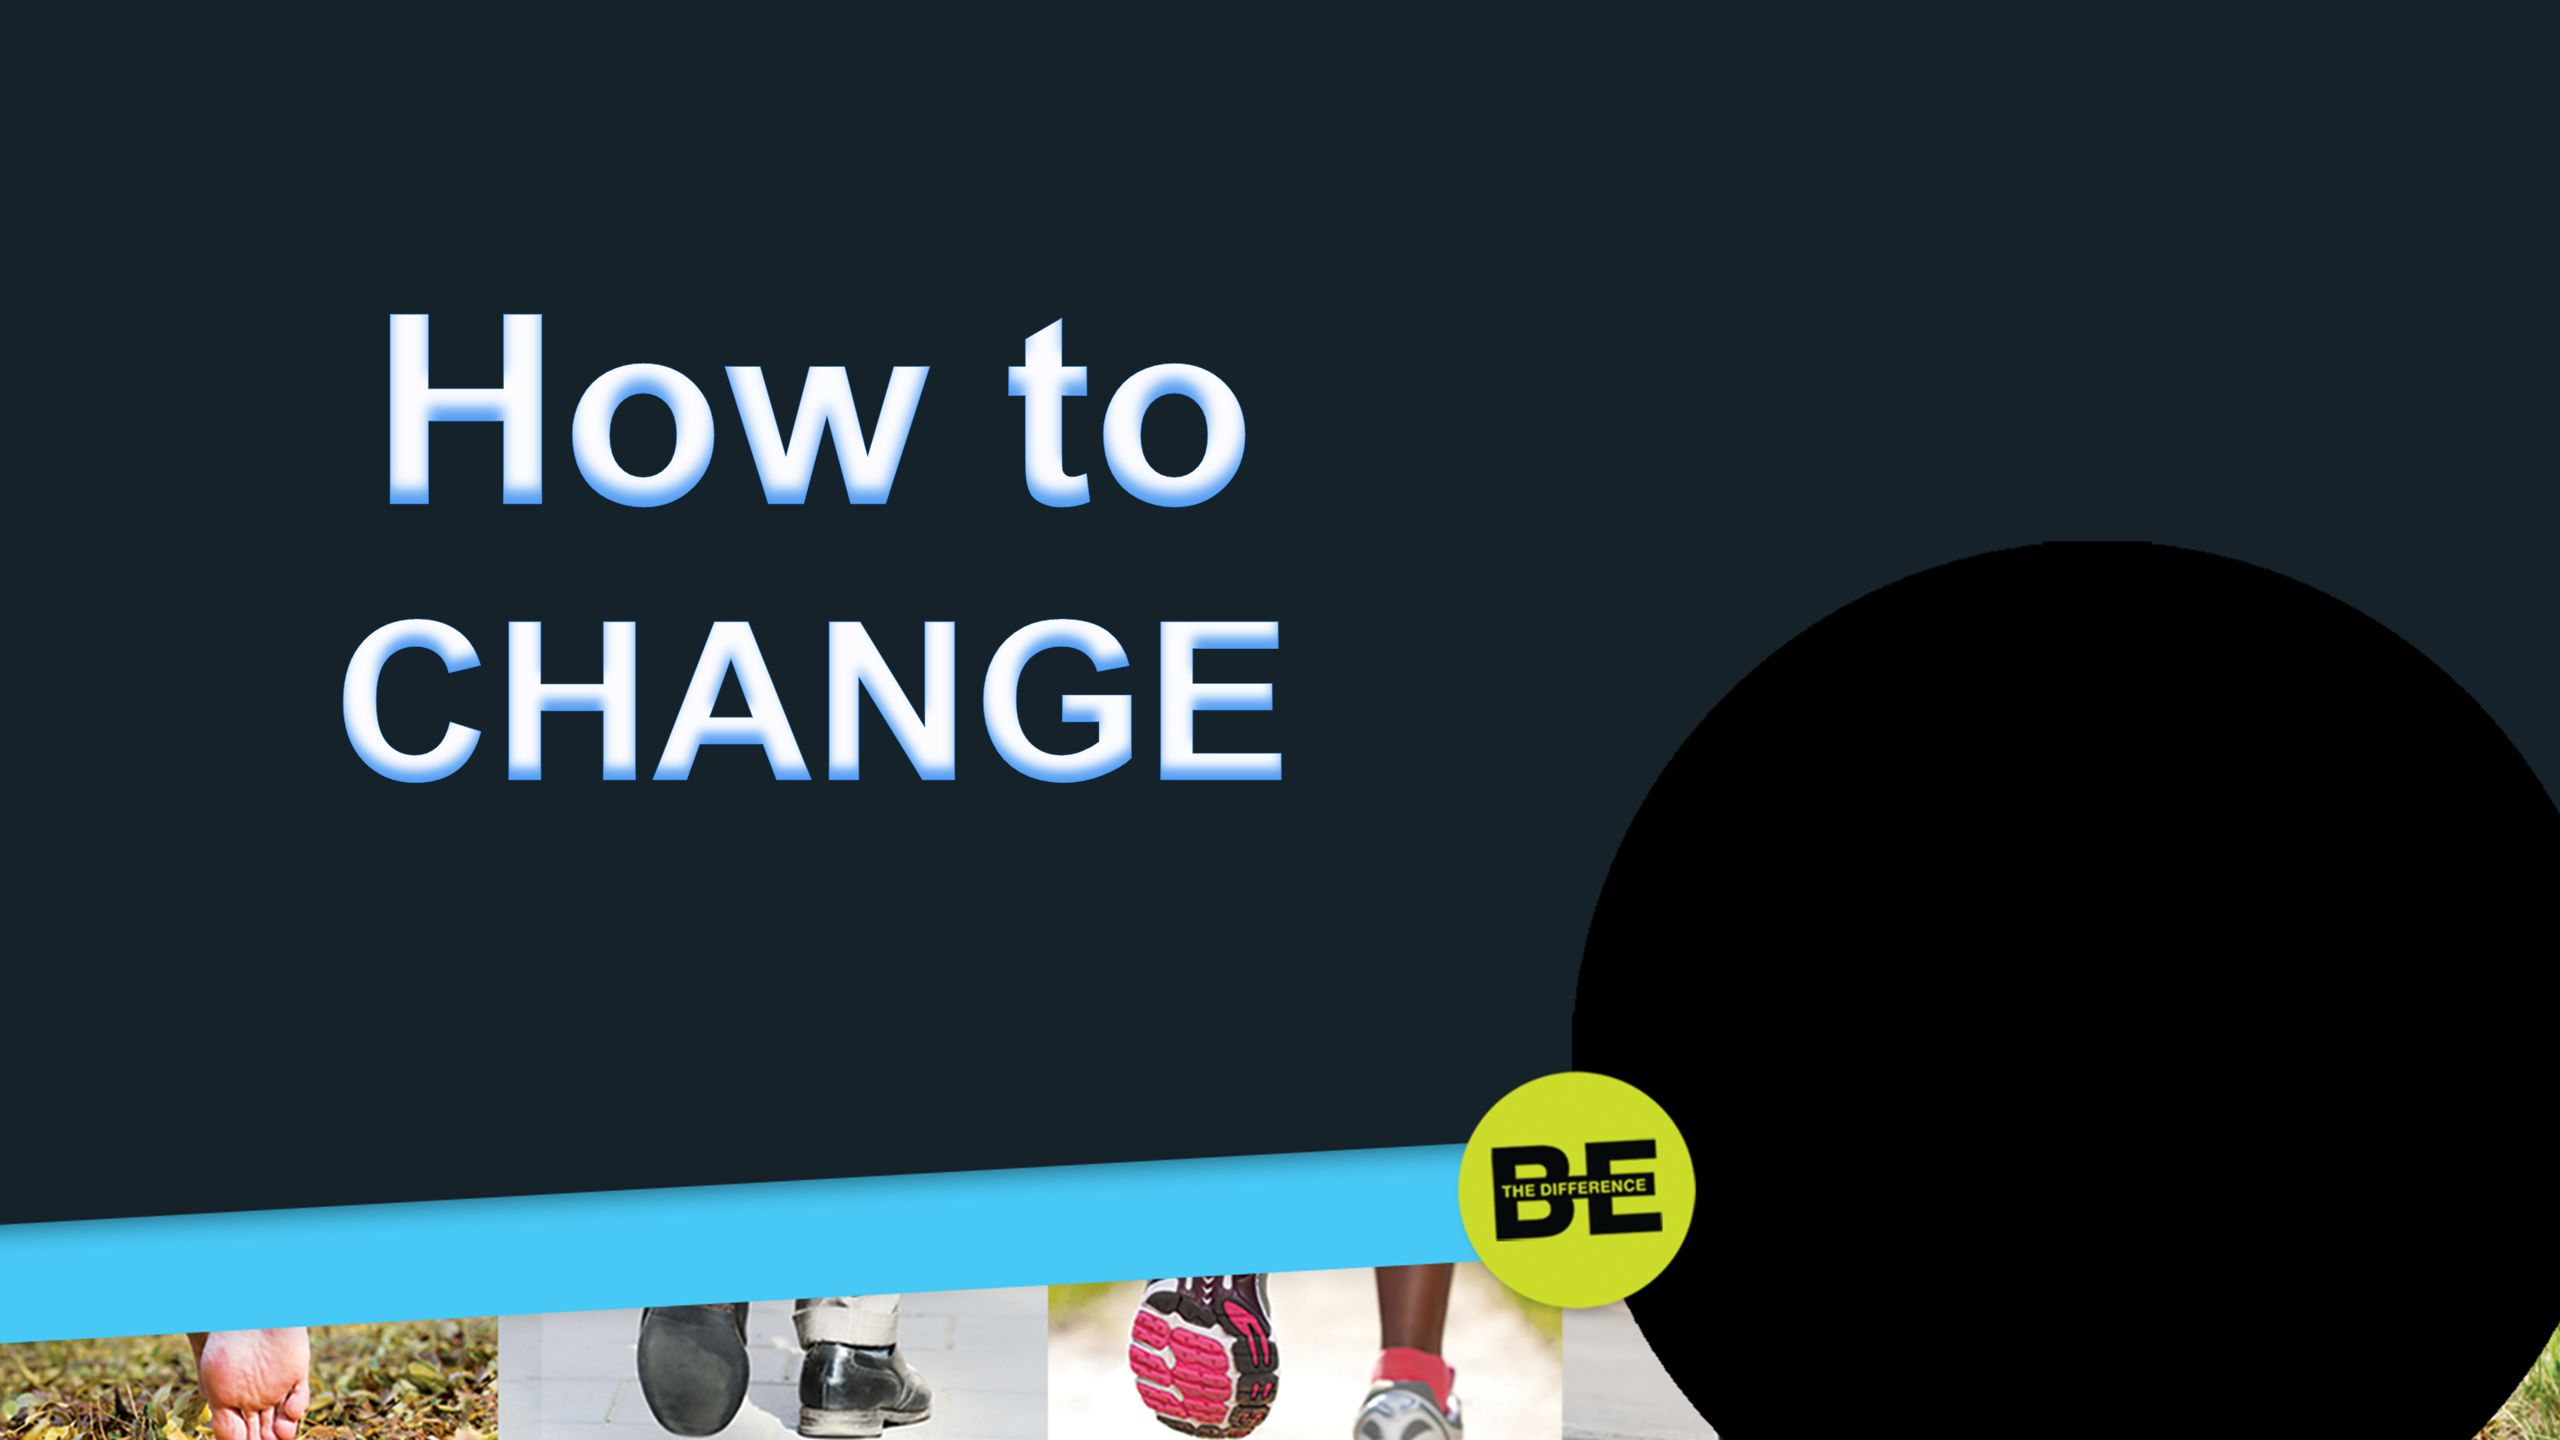 How to CHANGE 4. How to change